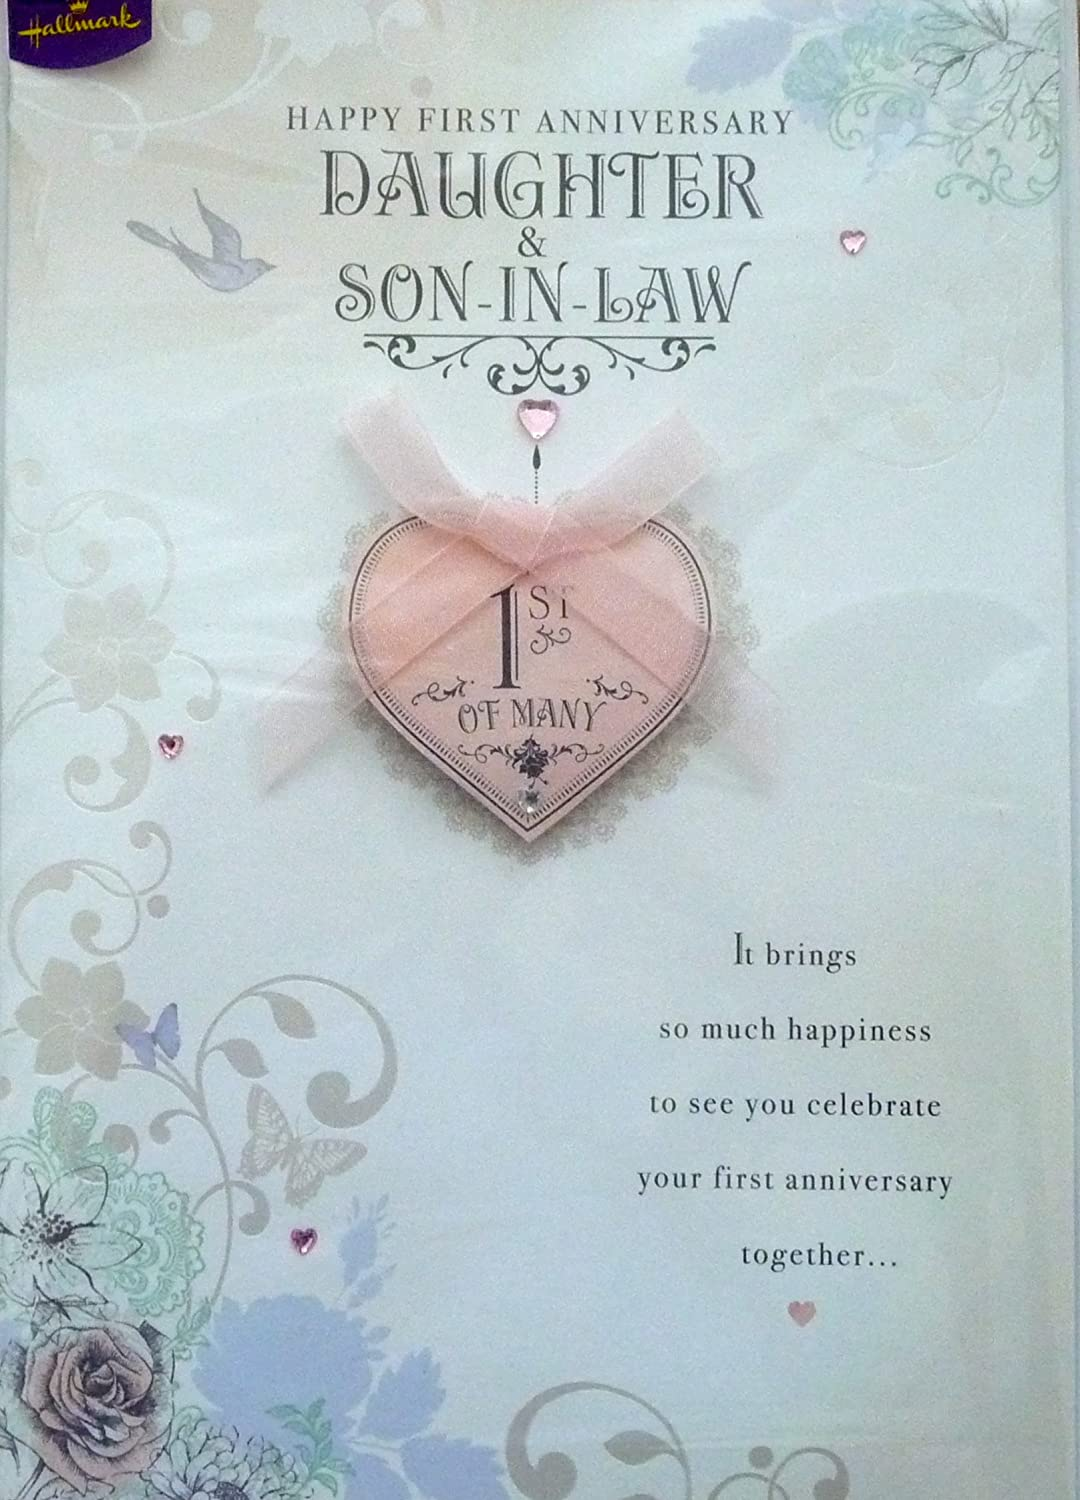 Son In Law Quotes: Marriage Anniversary Quotes For Daughter And Son In Law